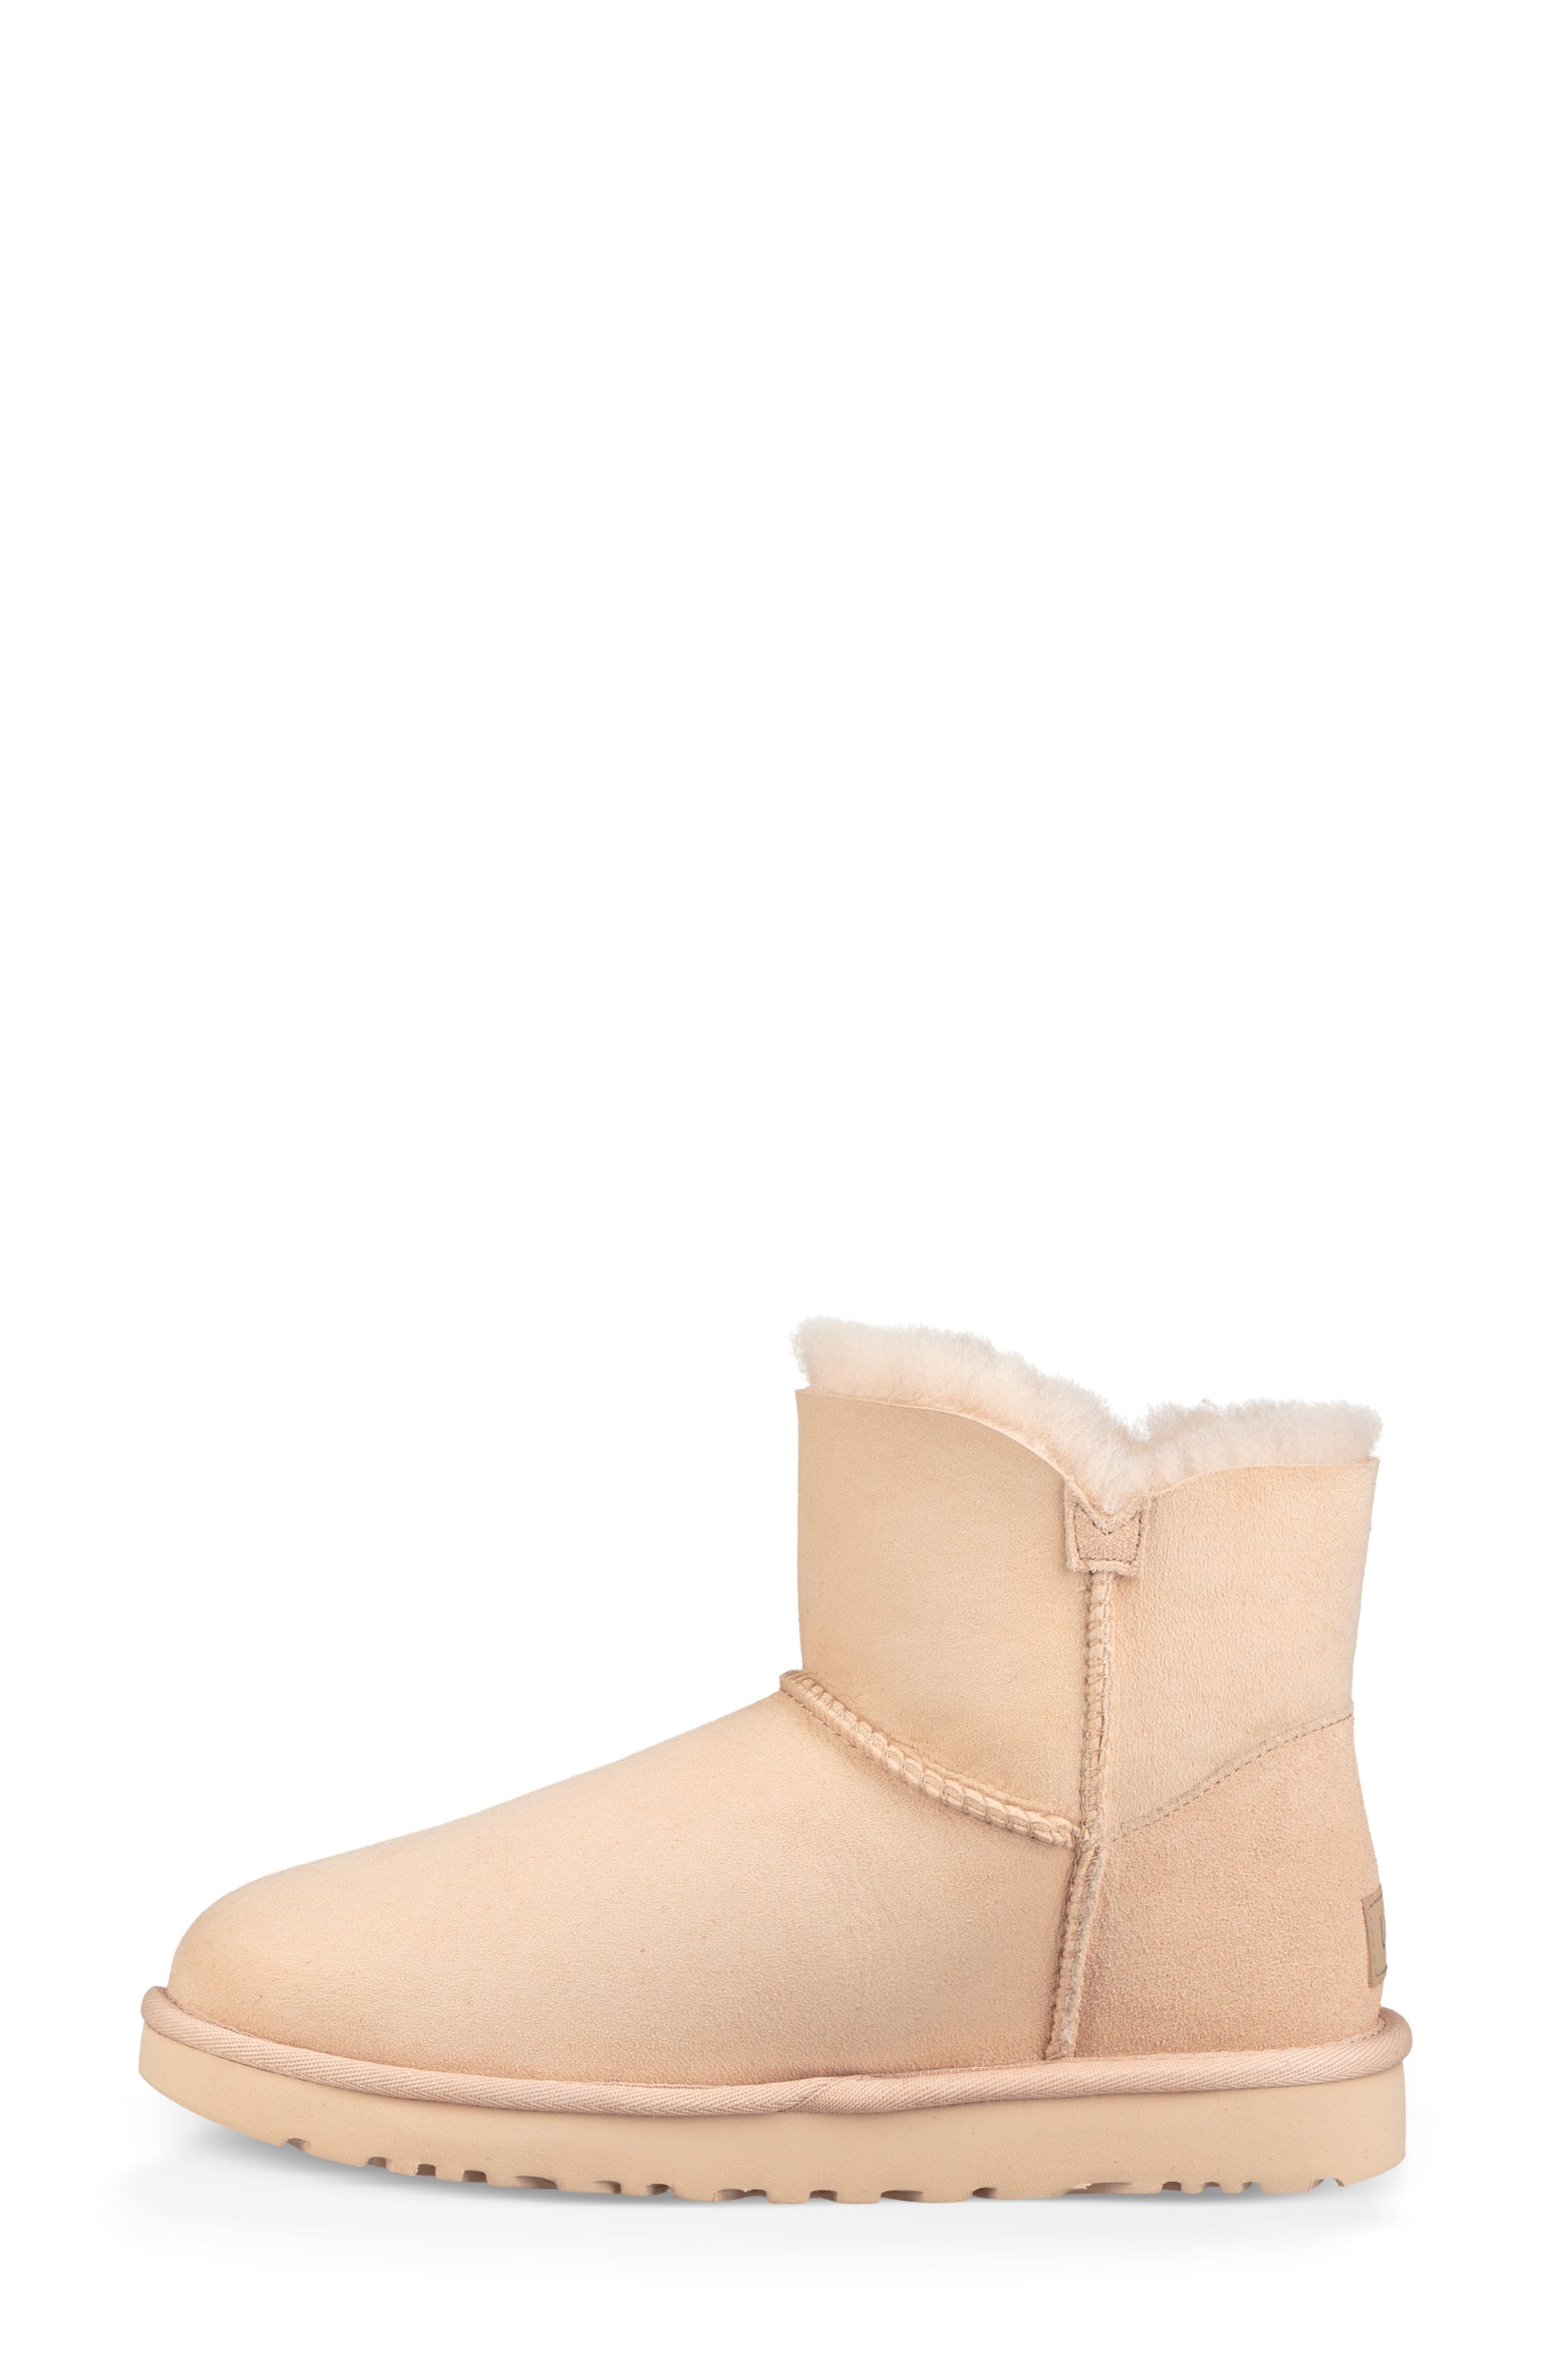 'Mini Bailey Button II' Boot,                             Alternate thumbnail 6, color,                             AMBER LIGHT SUEDE